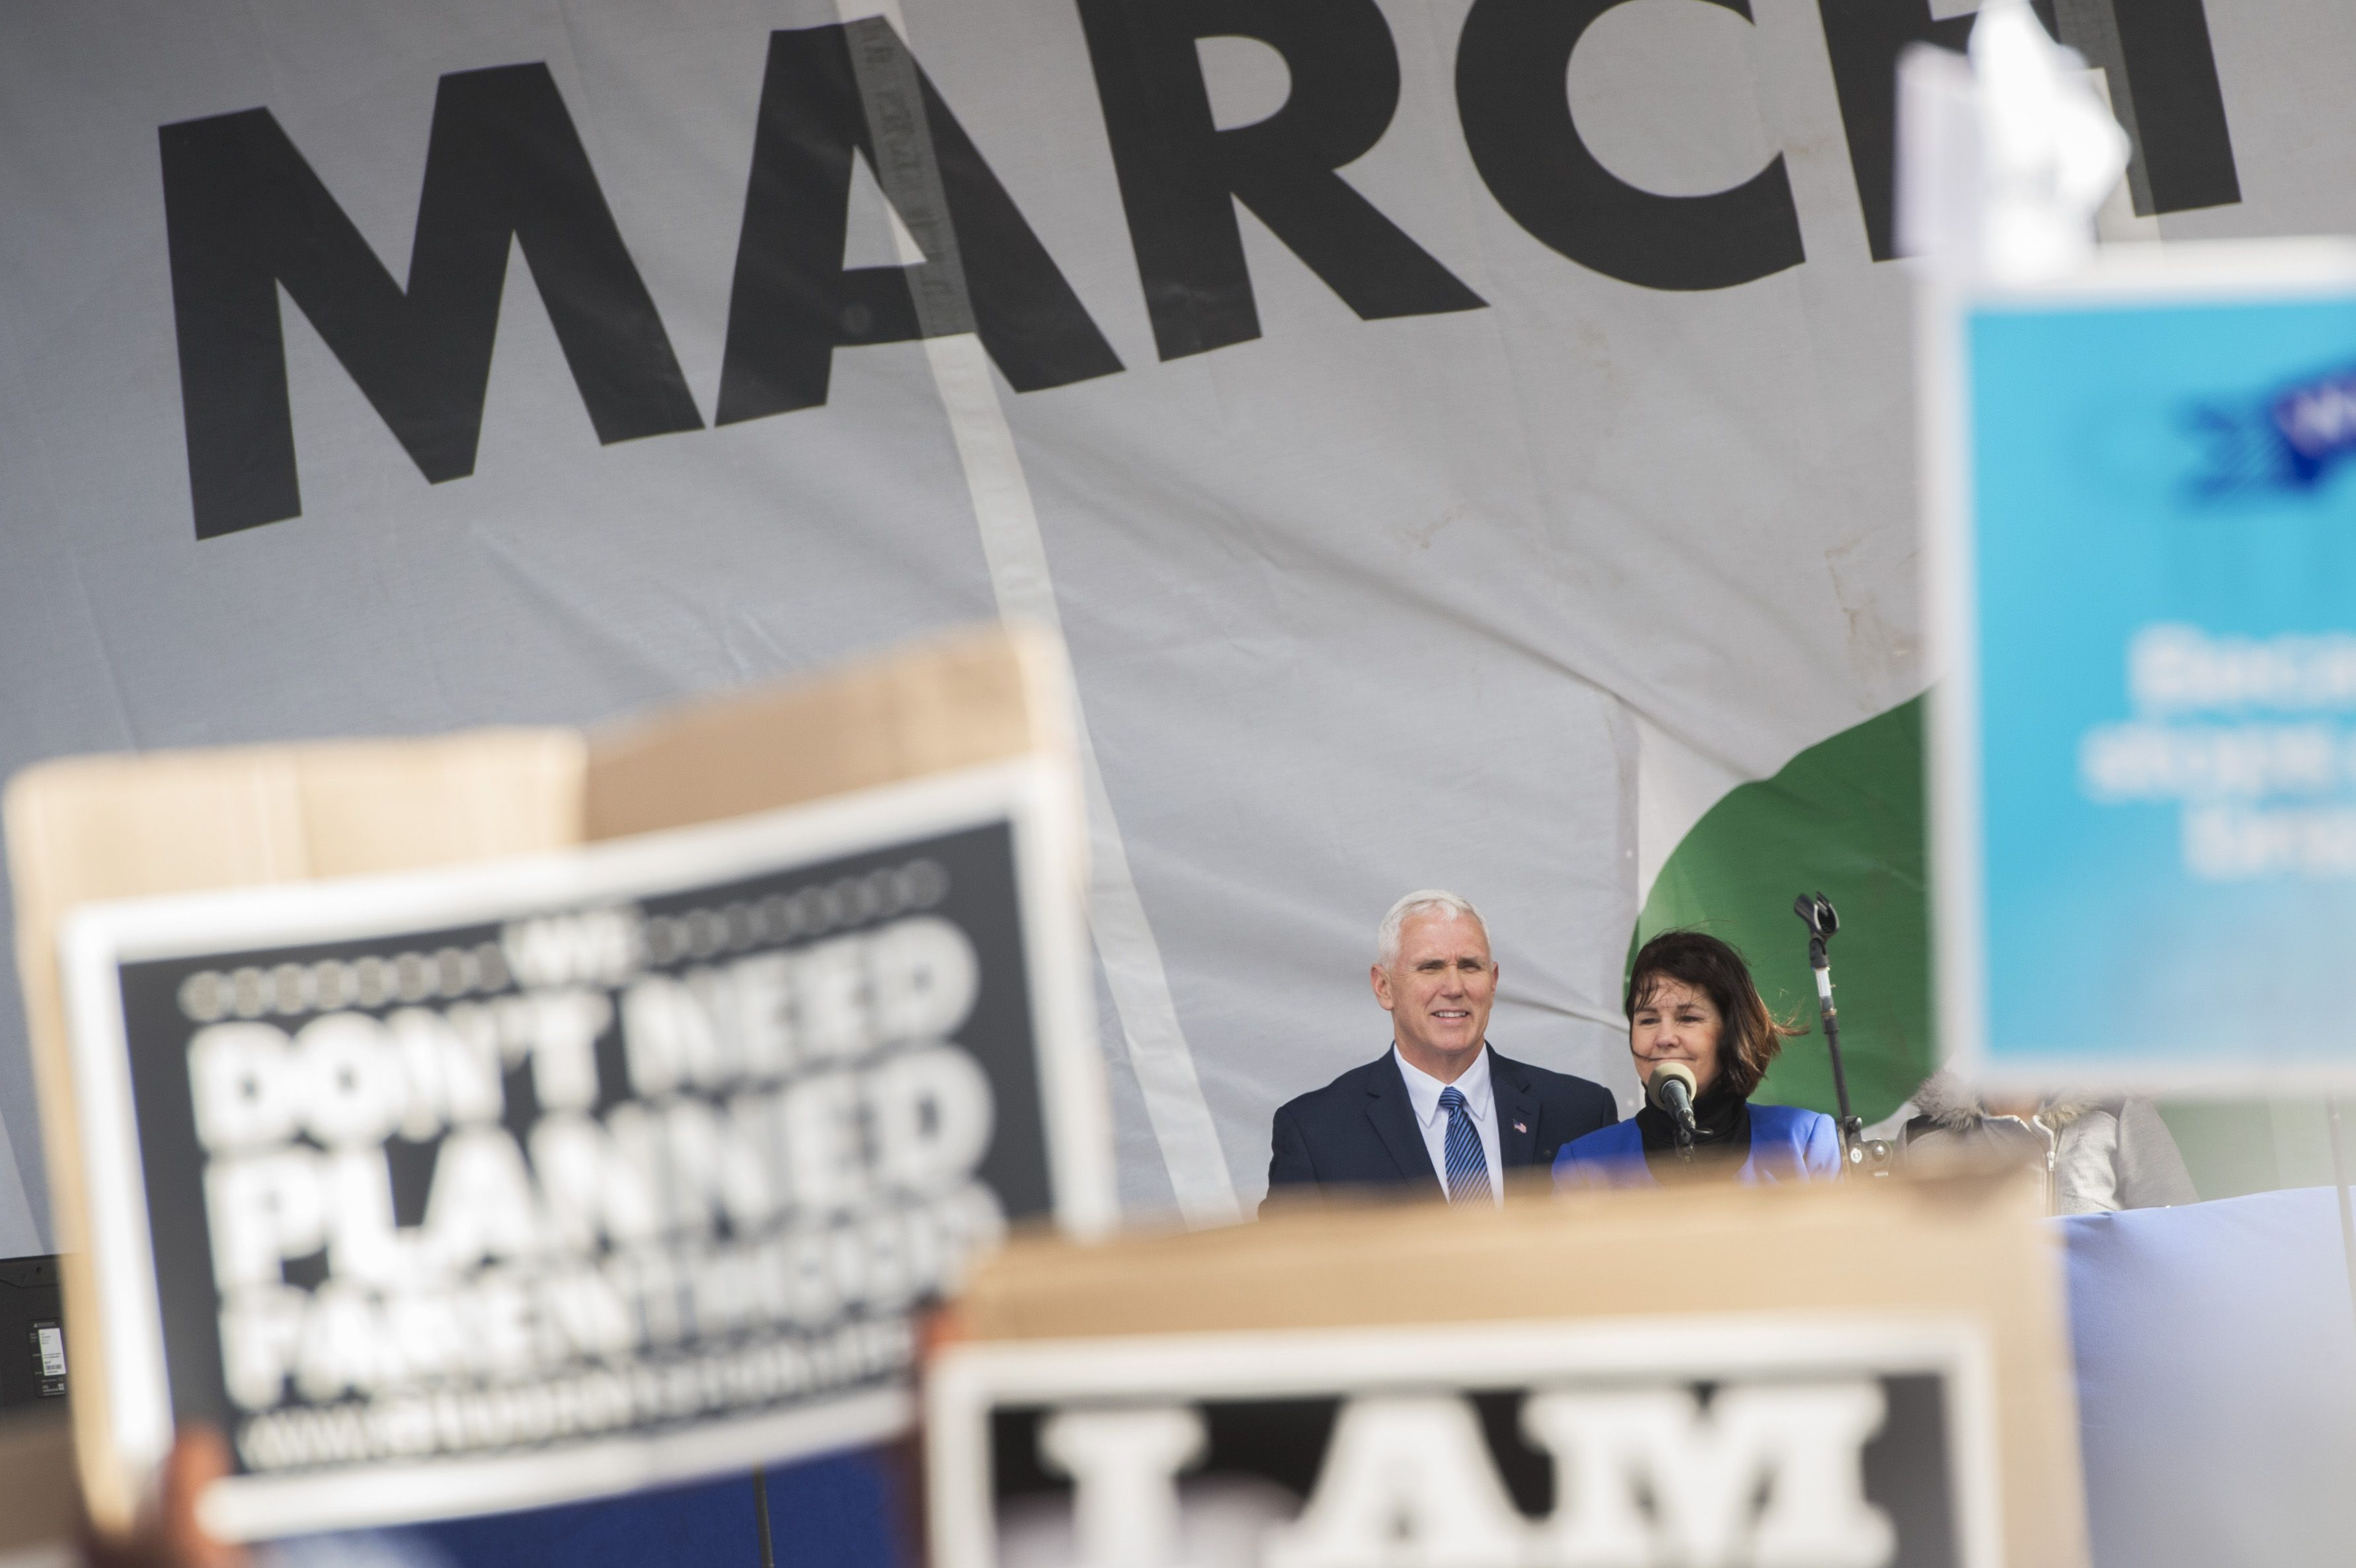 The Pences speak at the March for Life.